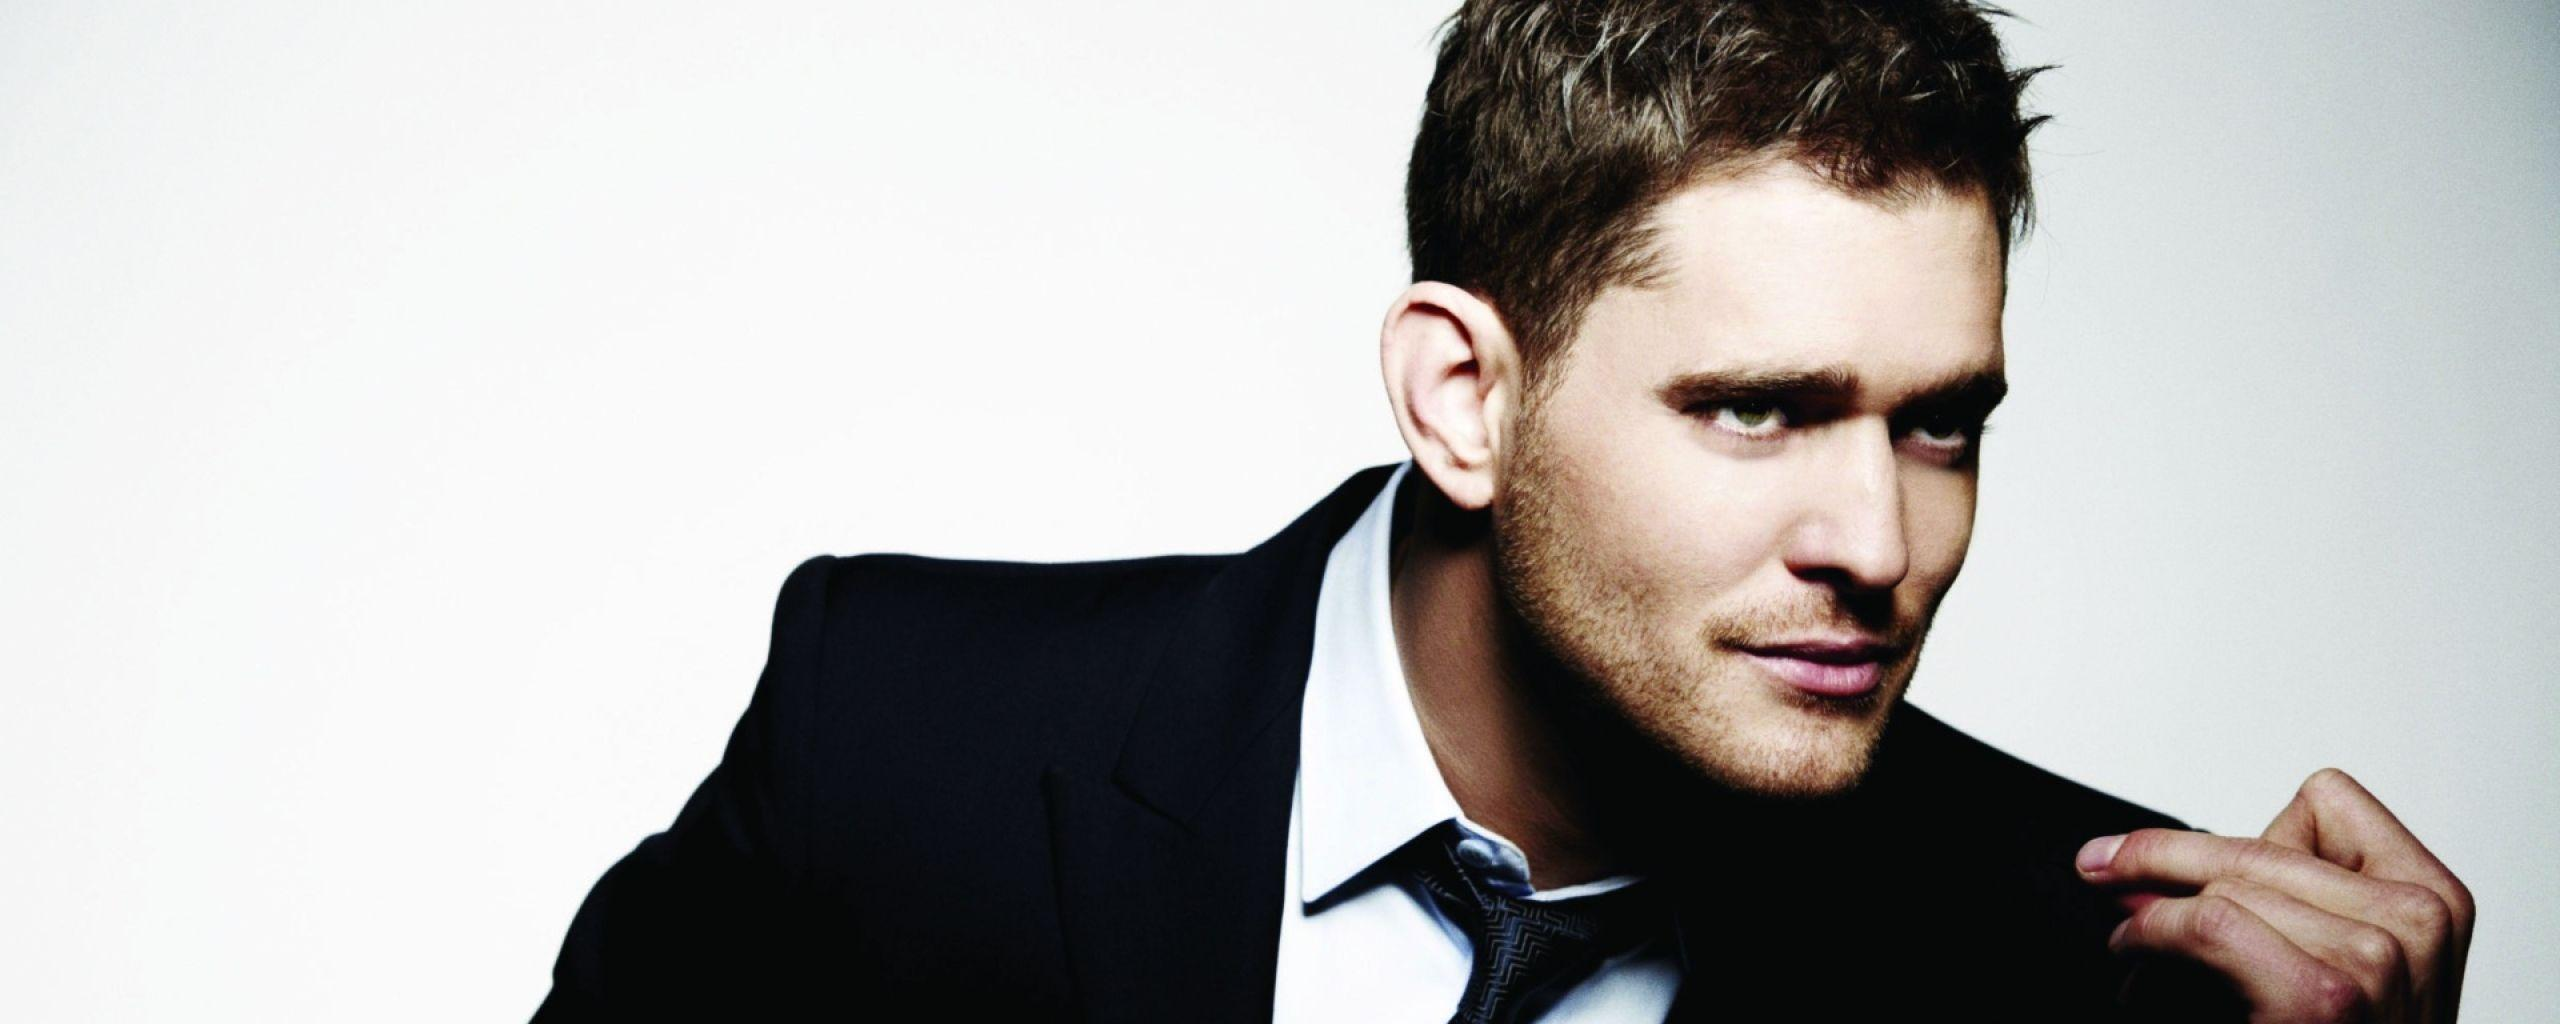 Download Wallpapers 2560x1024 Michael buble, Suit, Face, Tie, Look